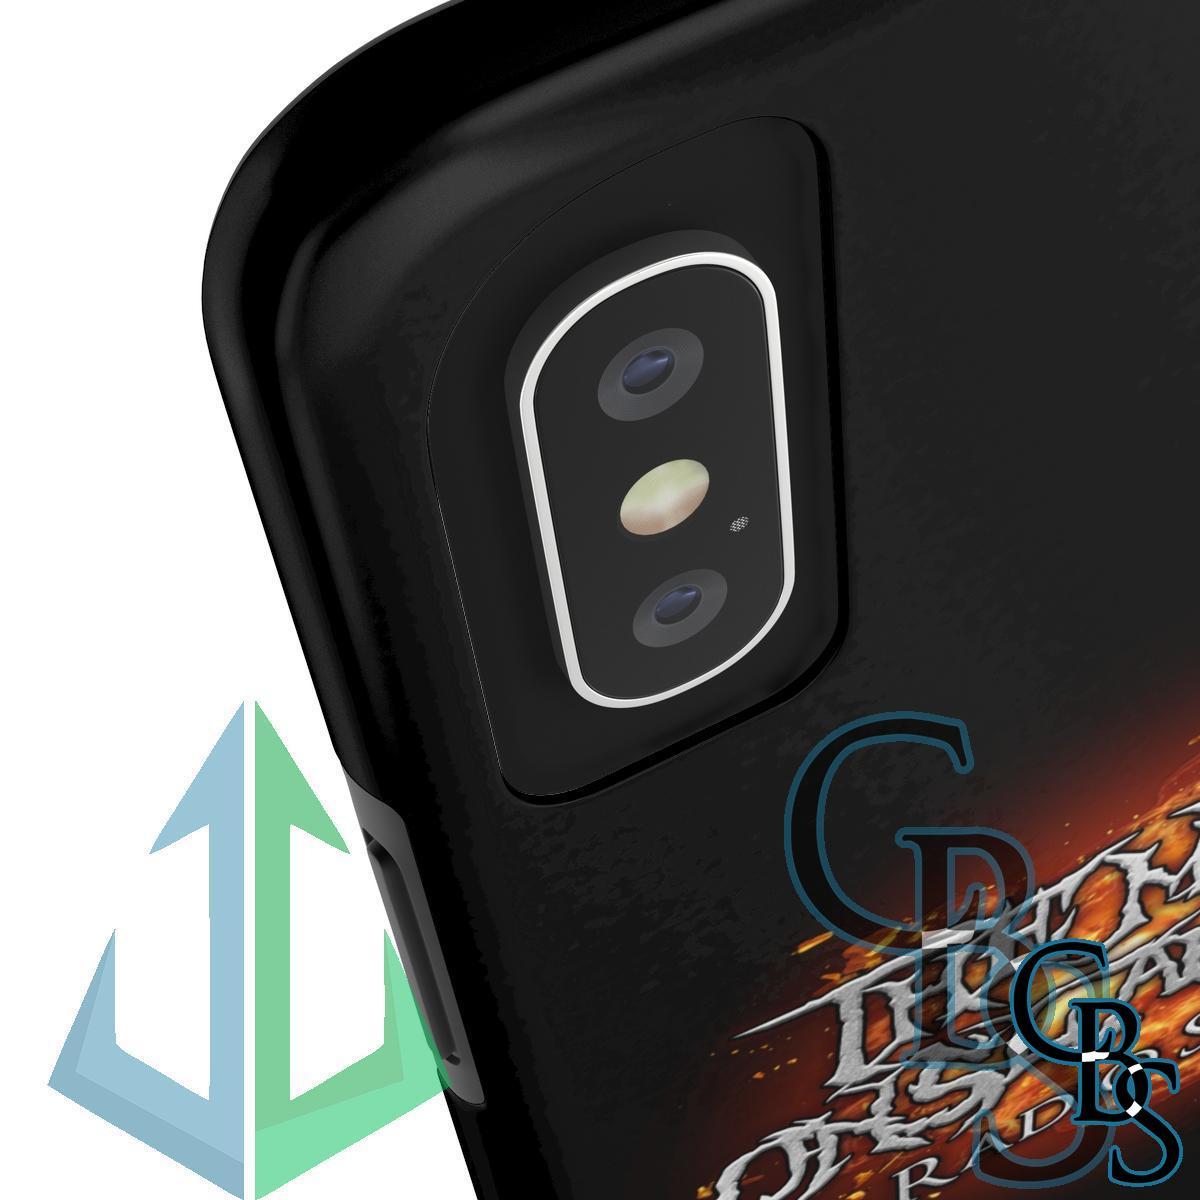 The Metal Onslaught Radio Show Tough iPhone Cases (iPhone 7/7 Plus, iPhone 8/8 Plus, iPhone X, XS, XR, iPhone 11, 11 Pro, 11 Pro Max)